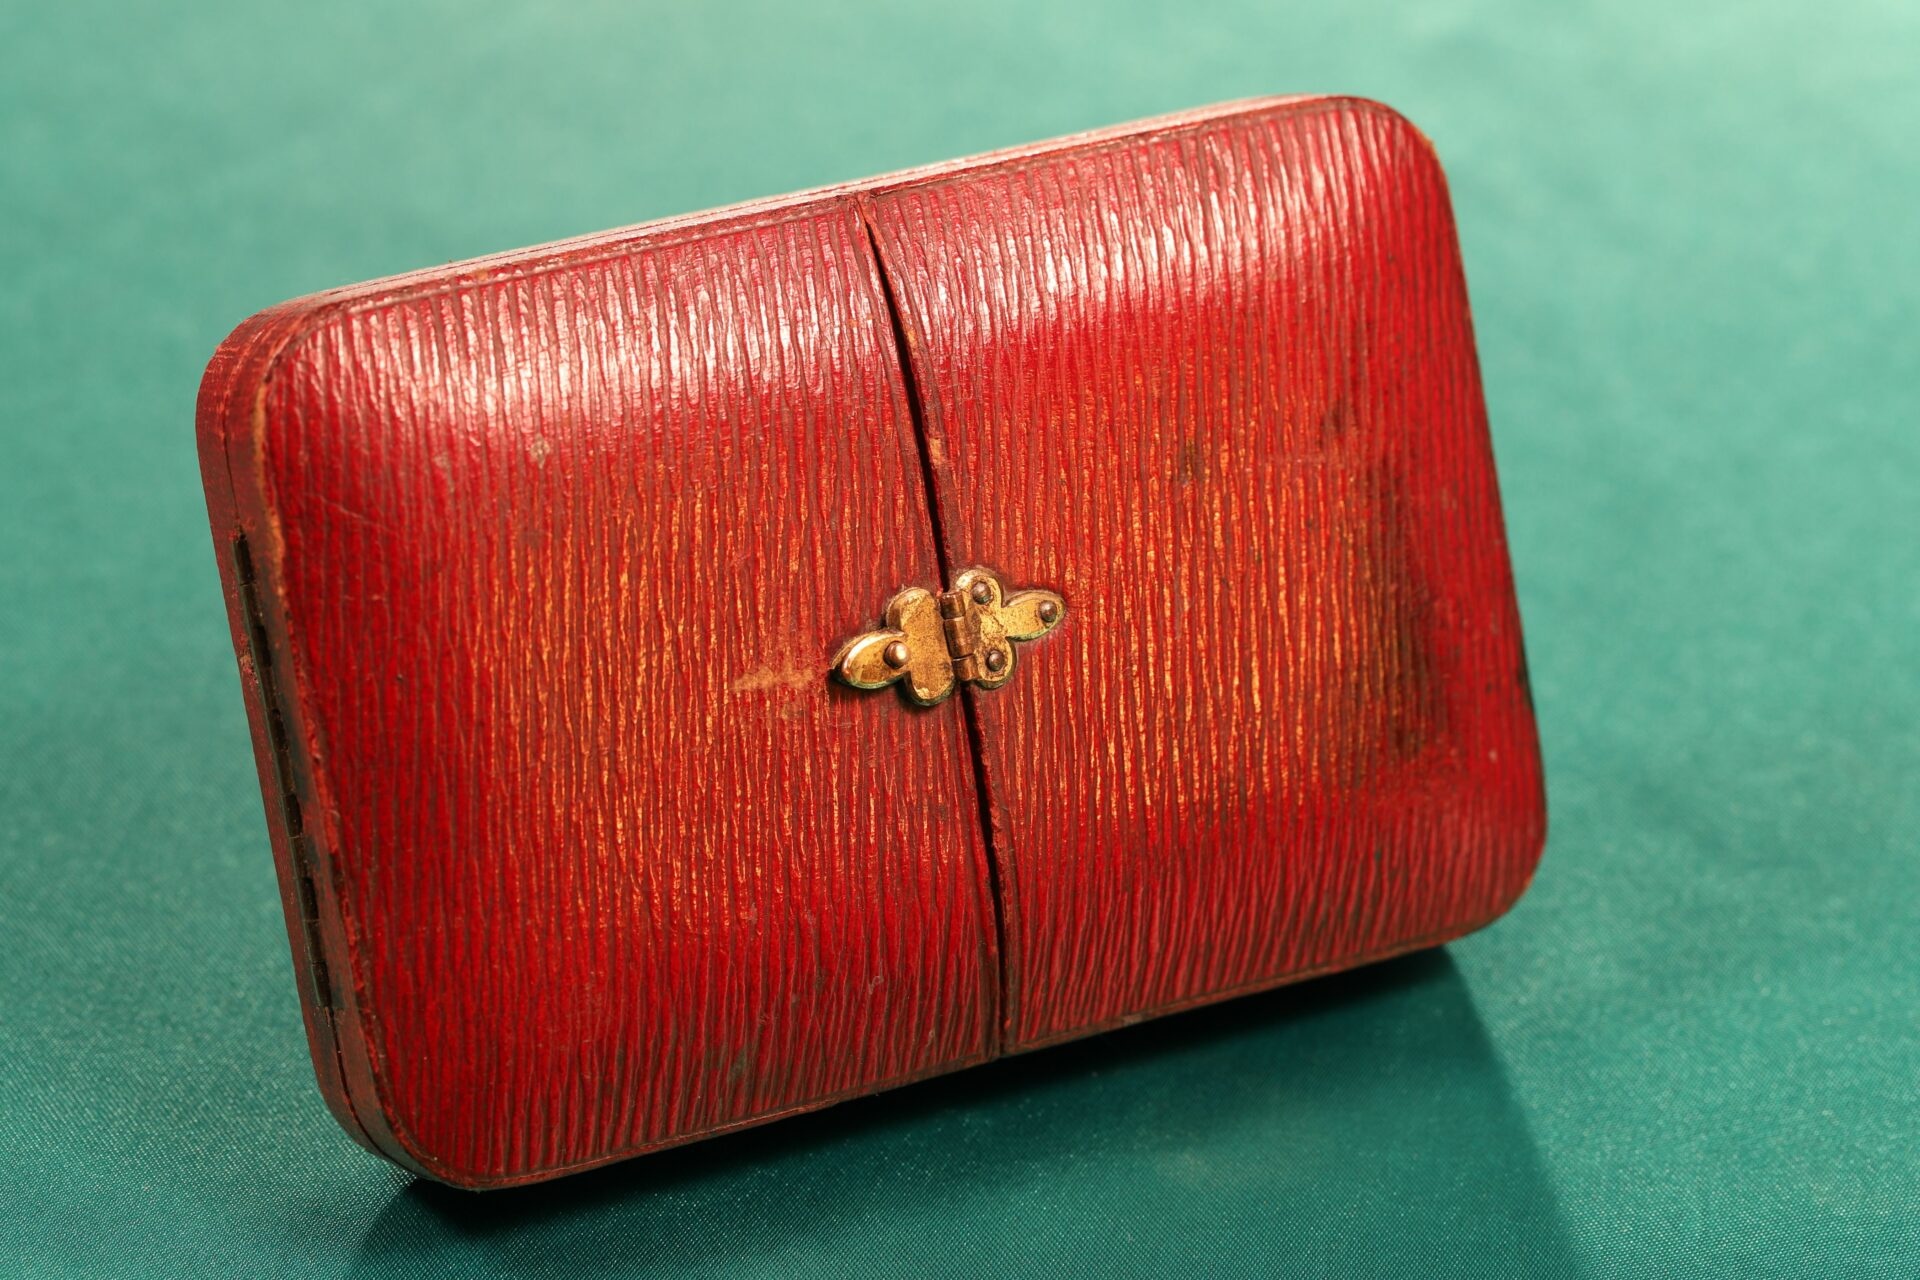 Image of front of closed case of Houghton & Gunn Silver Travel Compendium c1895